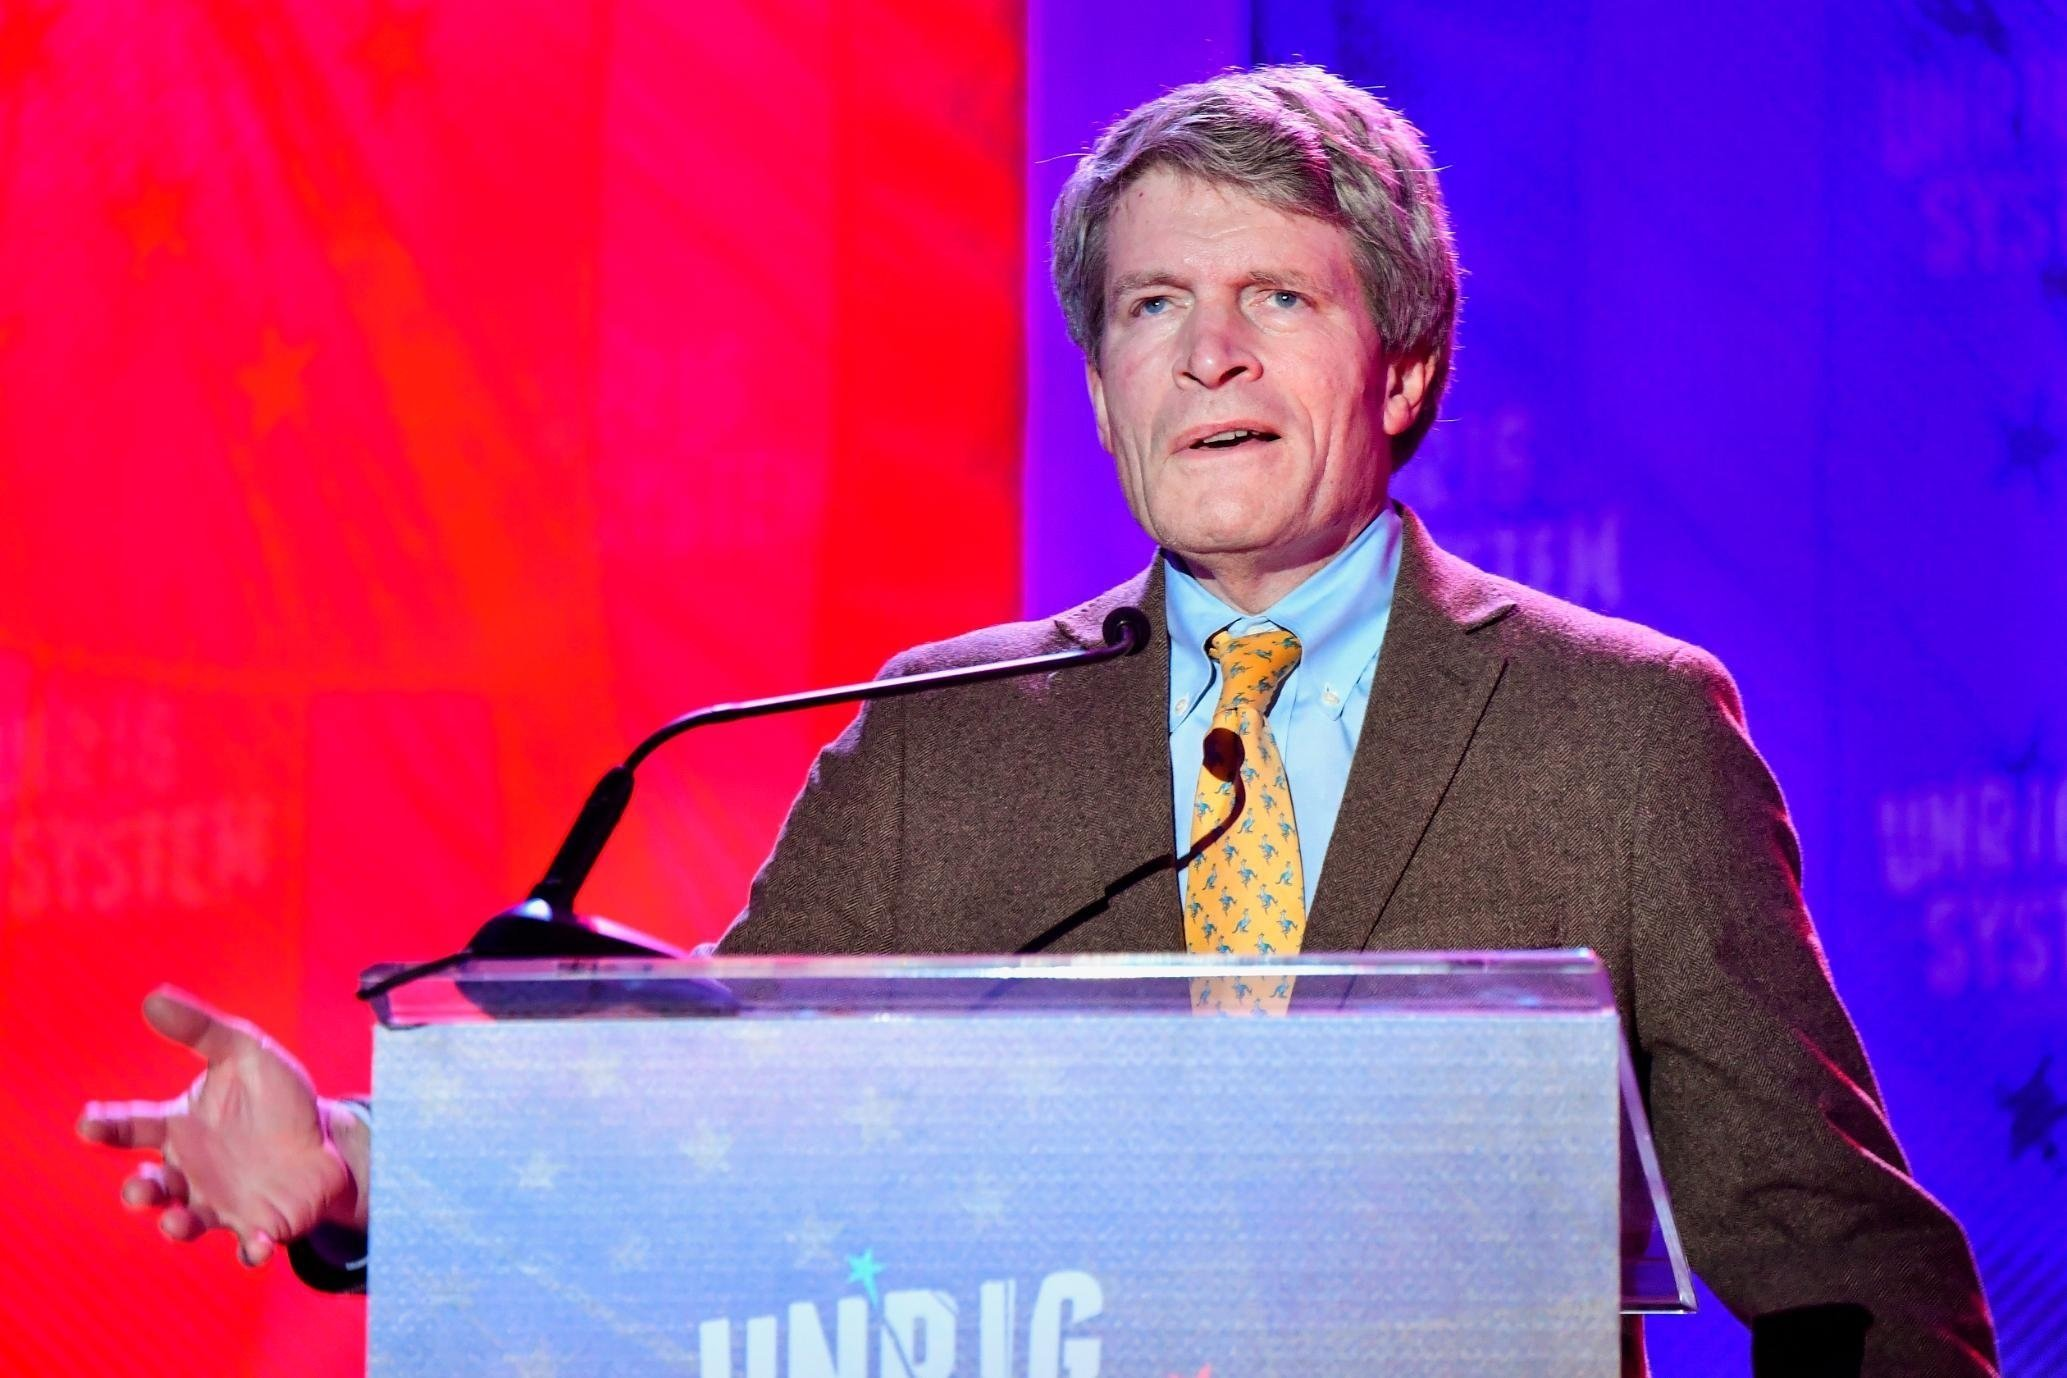 Richard Painter, a former White House ethics lawyer for President George W. Bush who has emerged as a prominent critic of President Donald Trump, announced that he is considering a run for Senate.